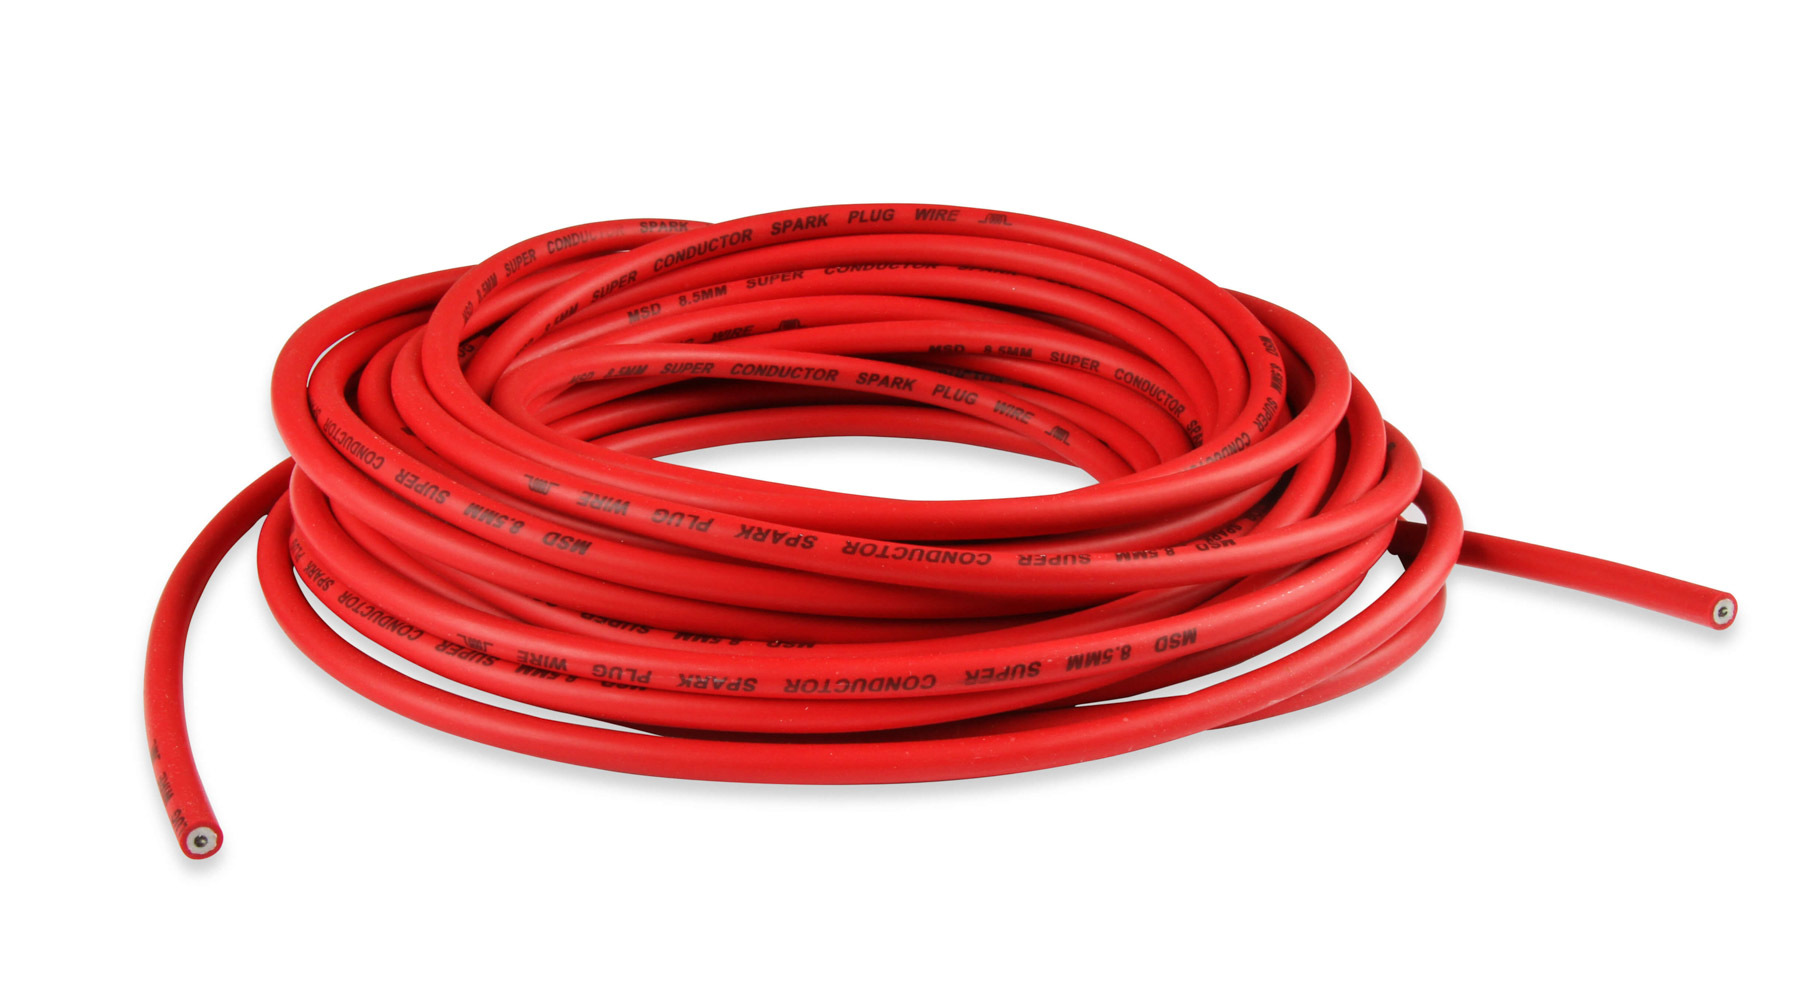 MSD Ignition 34029 Spark Plug Wire, Super Conductor, Spiral Core, 8.5 mm, 50 ft, Silicone, Red, Each